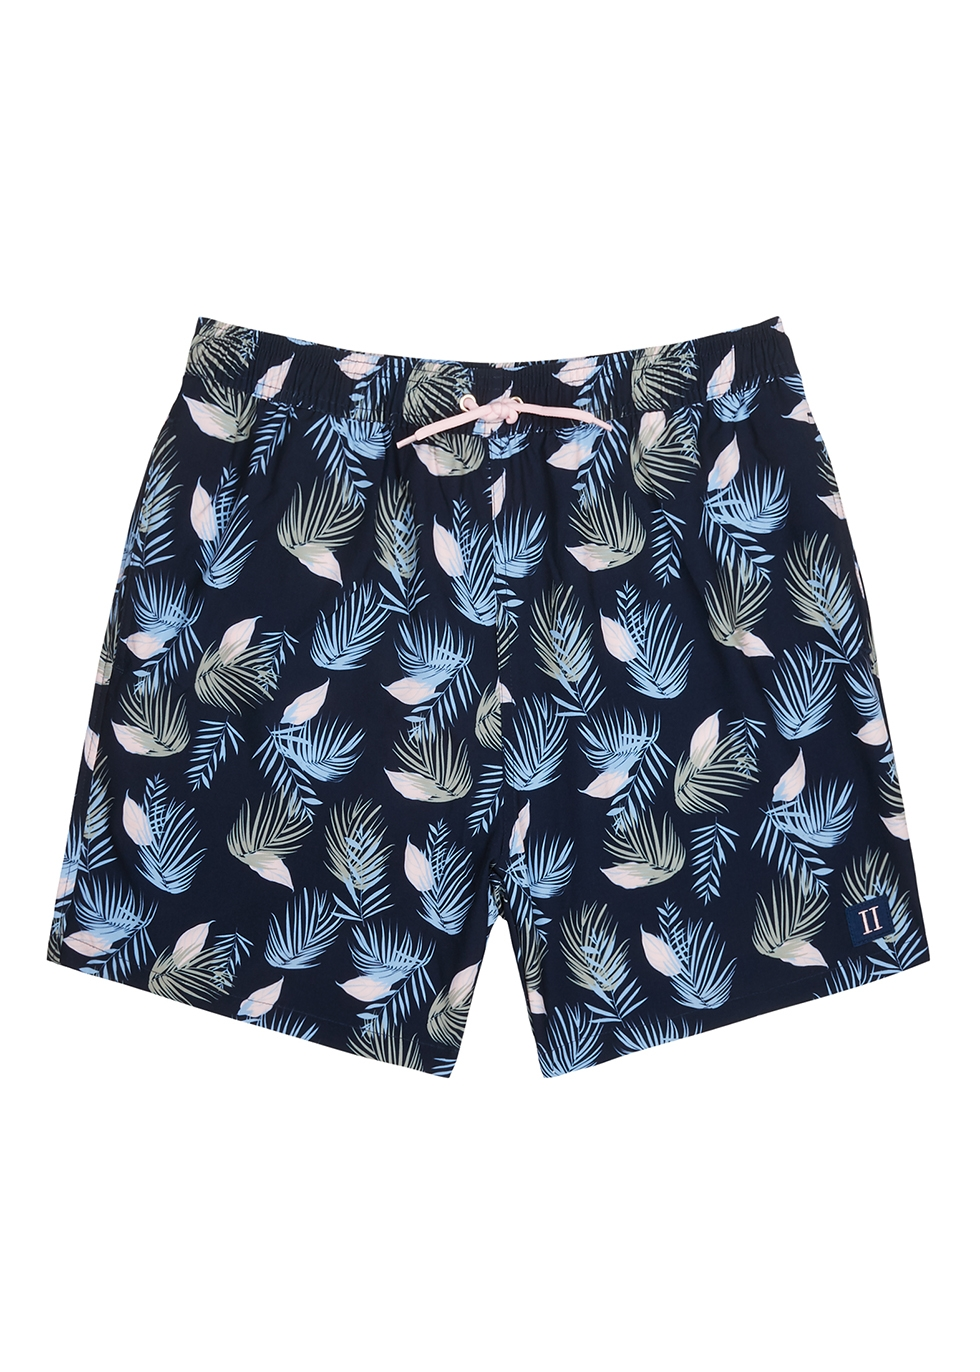 8c44c451b9 Men's Designer Swimwear - Swim Shorts & Trunks - Harvey Nichols